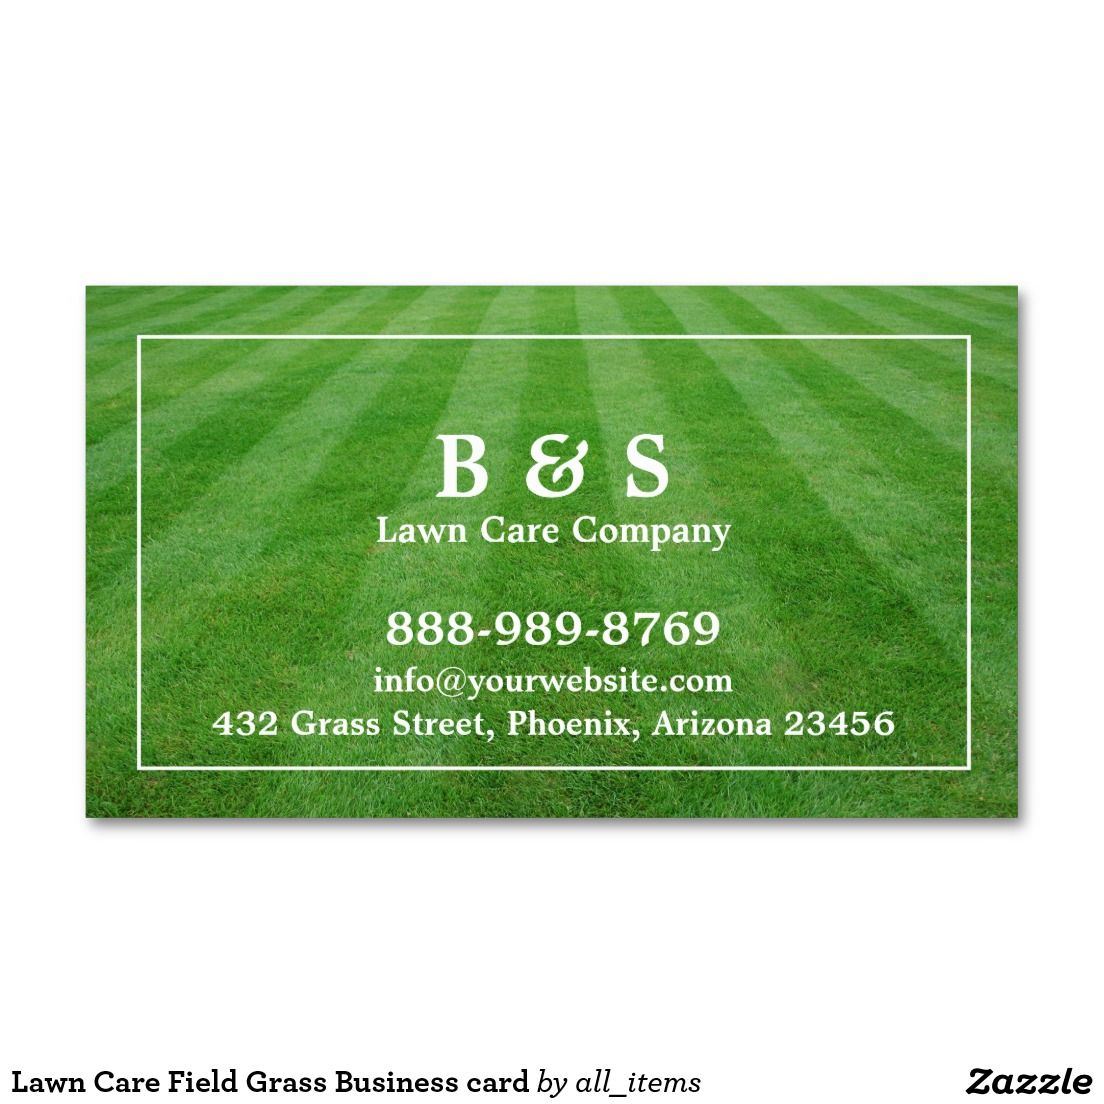 Lawn Care Field Grass Business Card Lawn Care Business Cards And Lawn